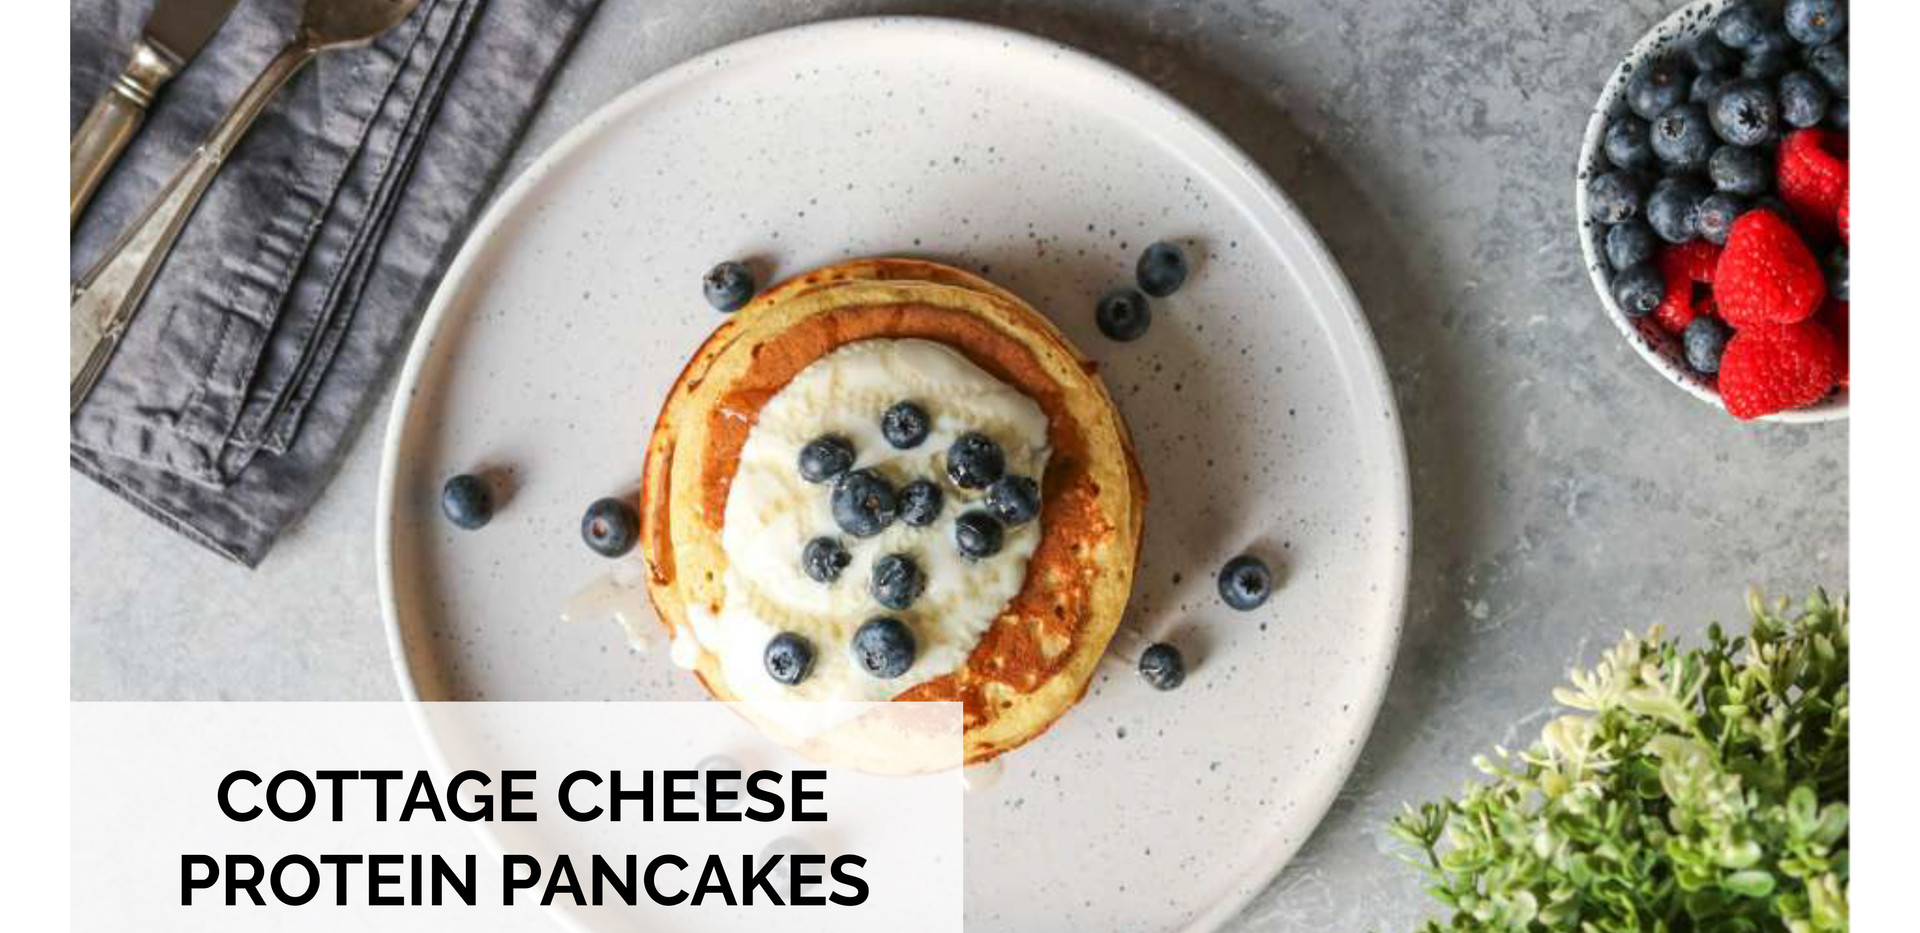 COTTAGE CHEESE PROTEIN PANCAKES-1.jpg